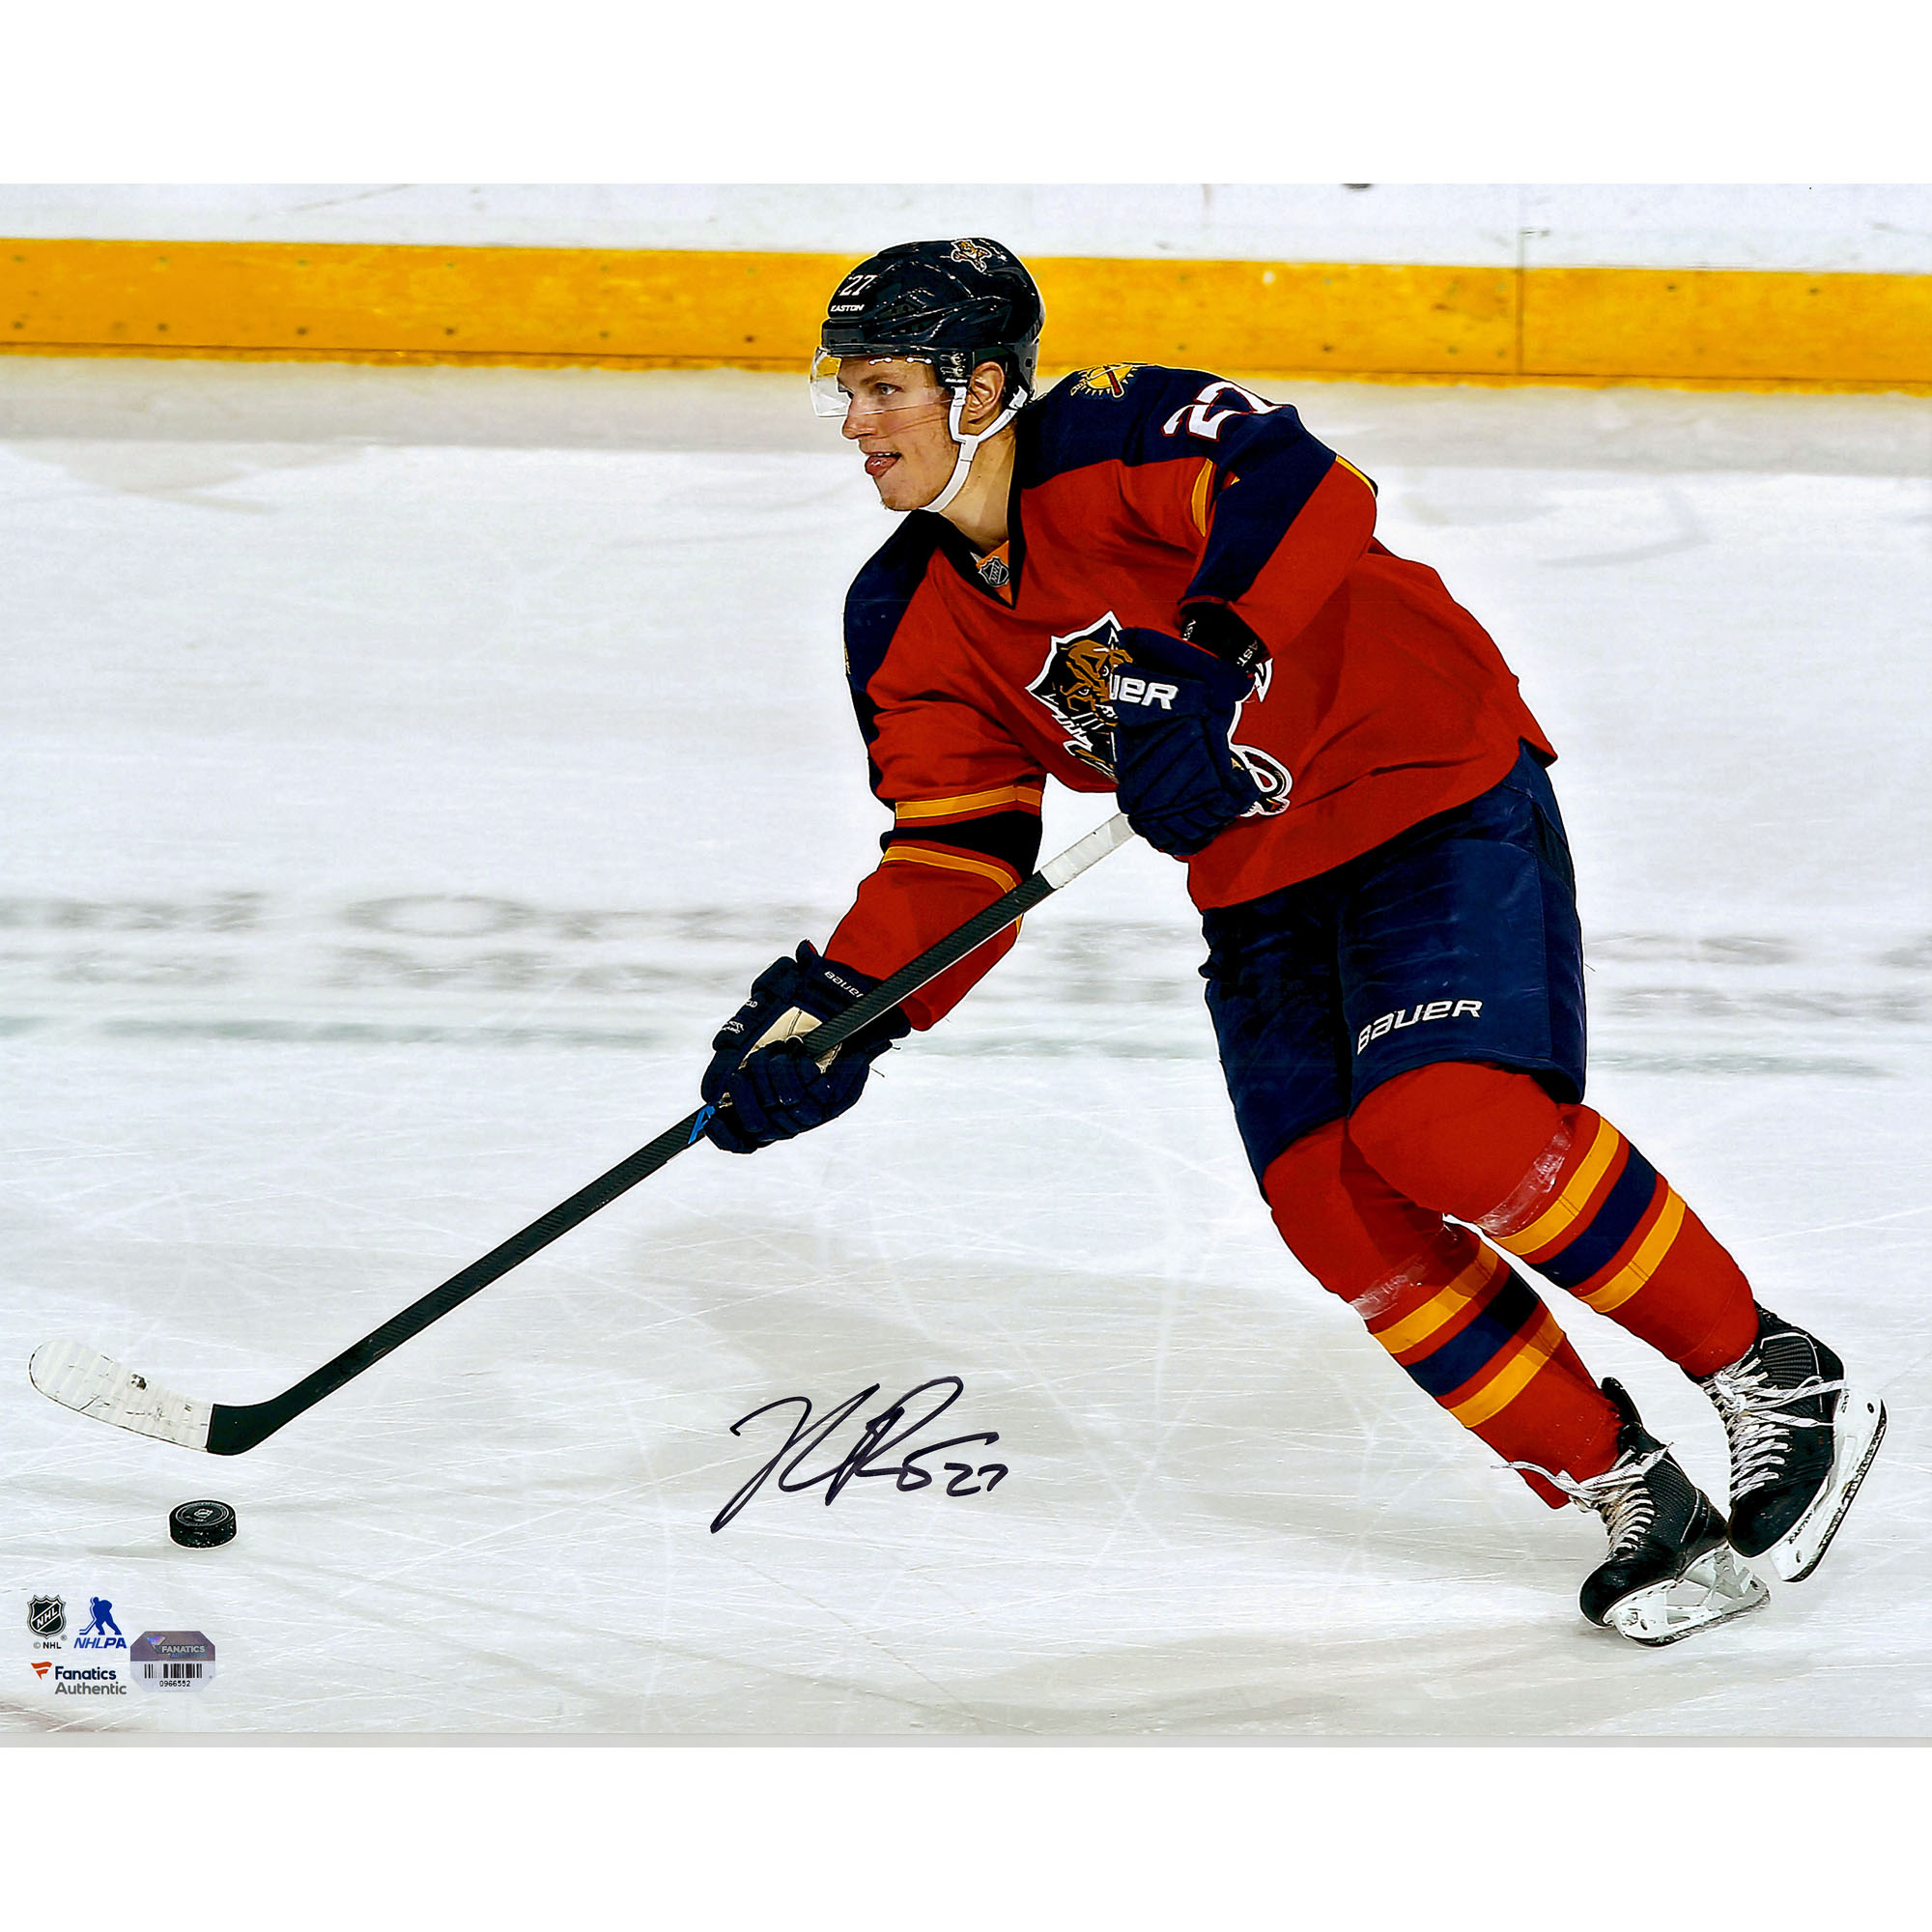 """Nick Bjugstad Florida Panthers Fanatics Authentic Autographed 16"""" x 20"""" Red Jersey Skating With Puck Photograph - No Size"""